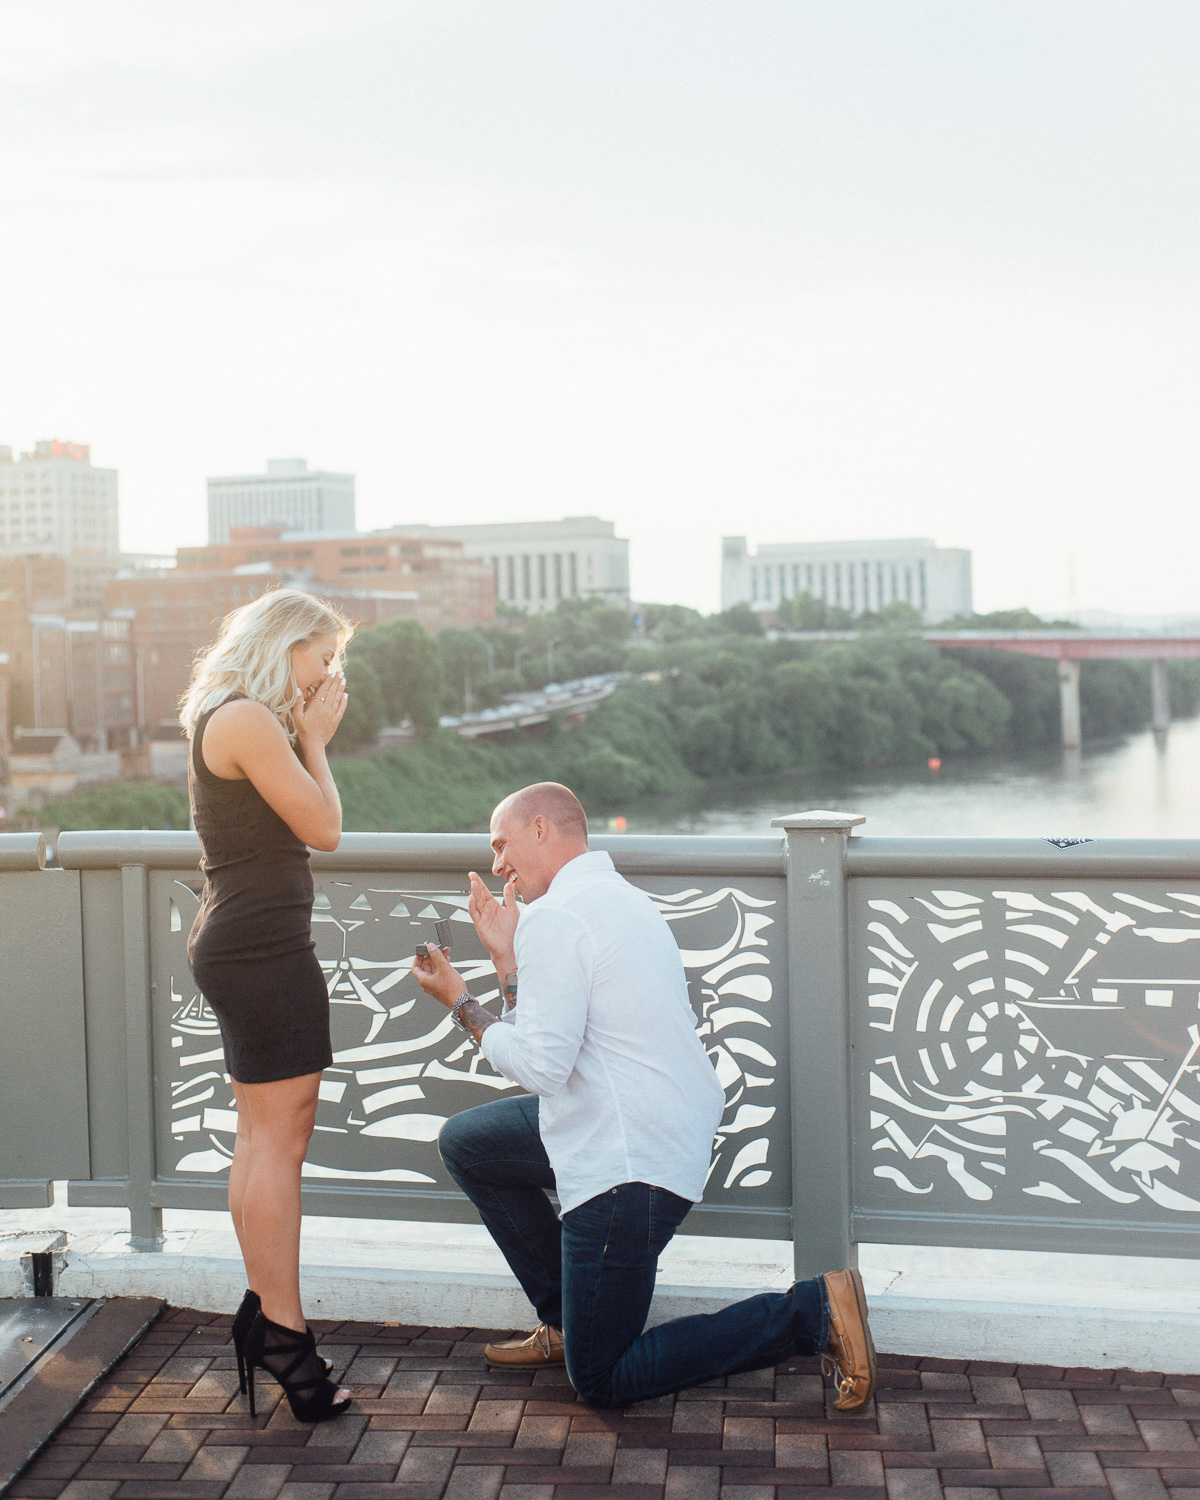 downtown-nashville-proposal-pedestrian-bridge Nashville Skyline Surprise Proposal